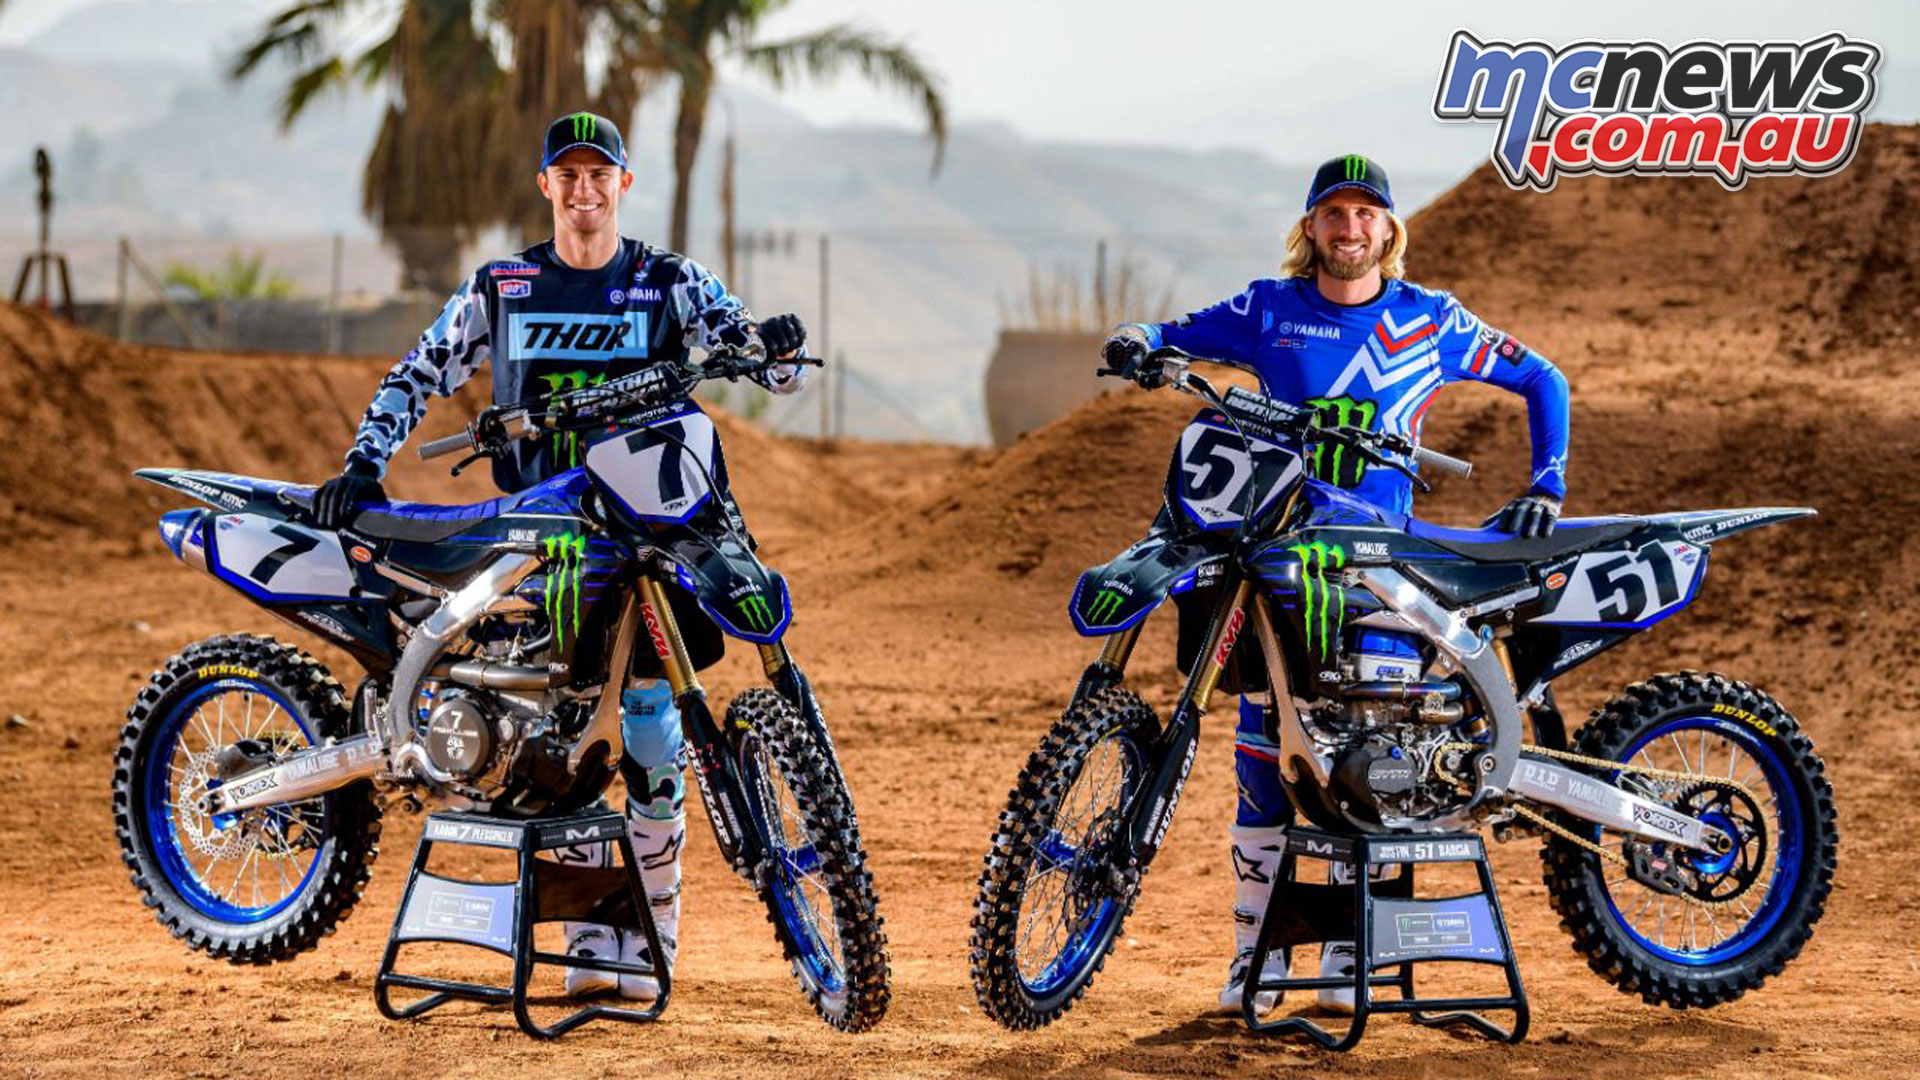 Barcia Plessinger with Yamaha Factory Racing in